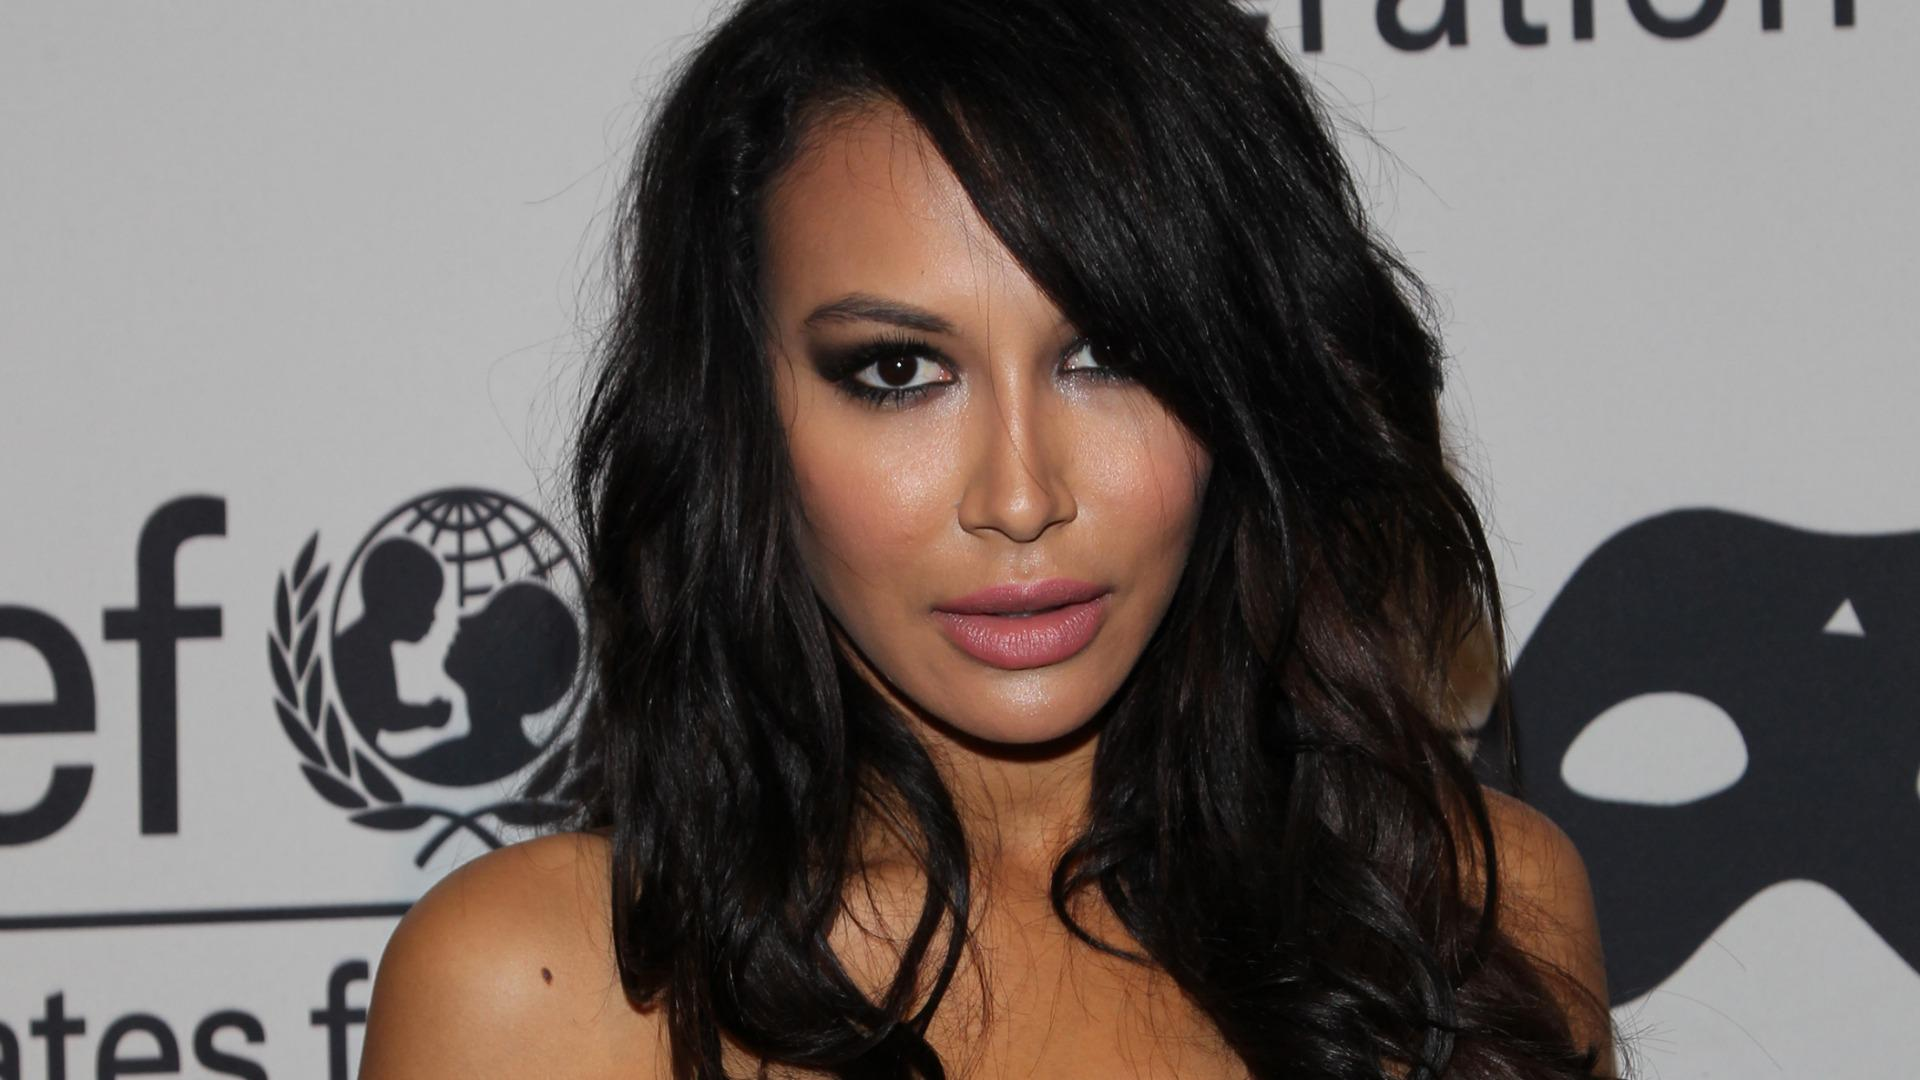 cute smile naya rivera high definition wallpaper